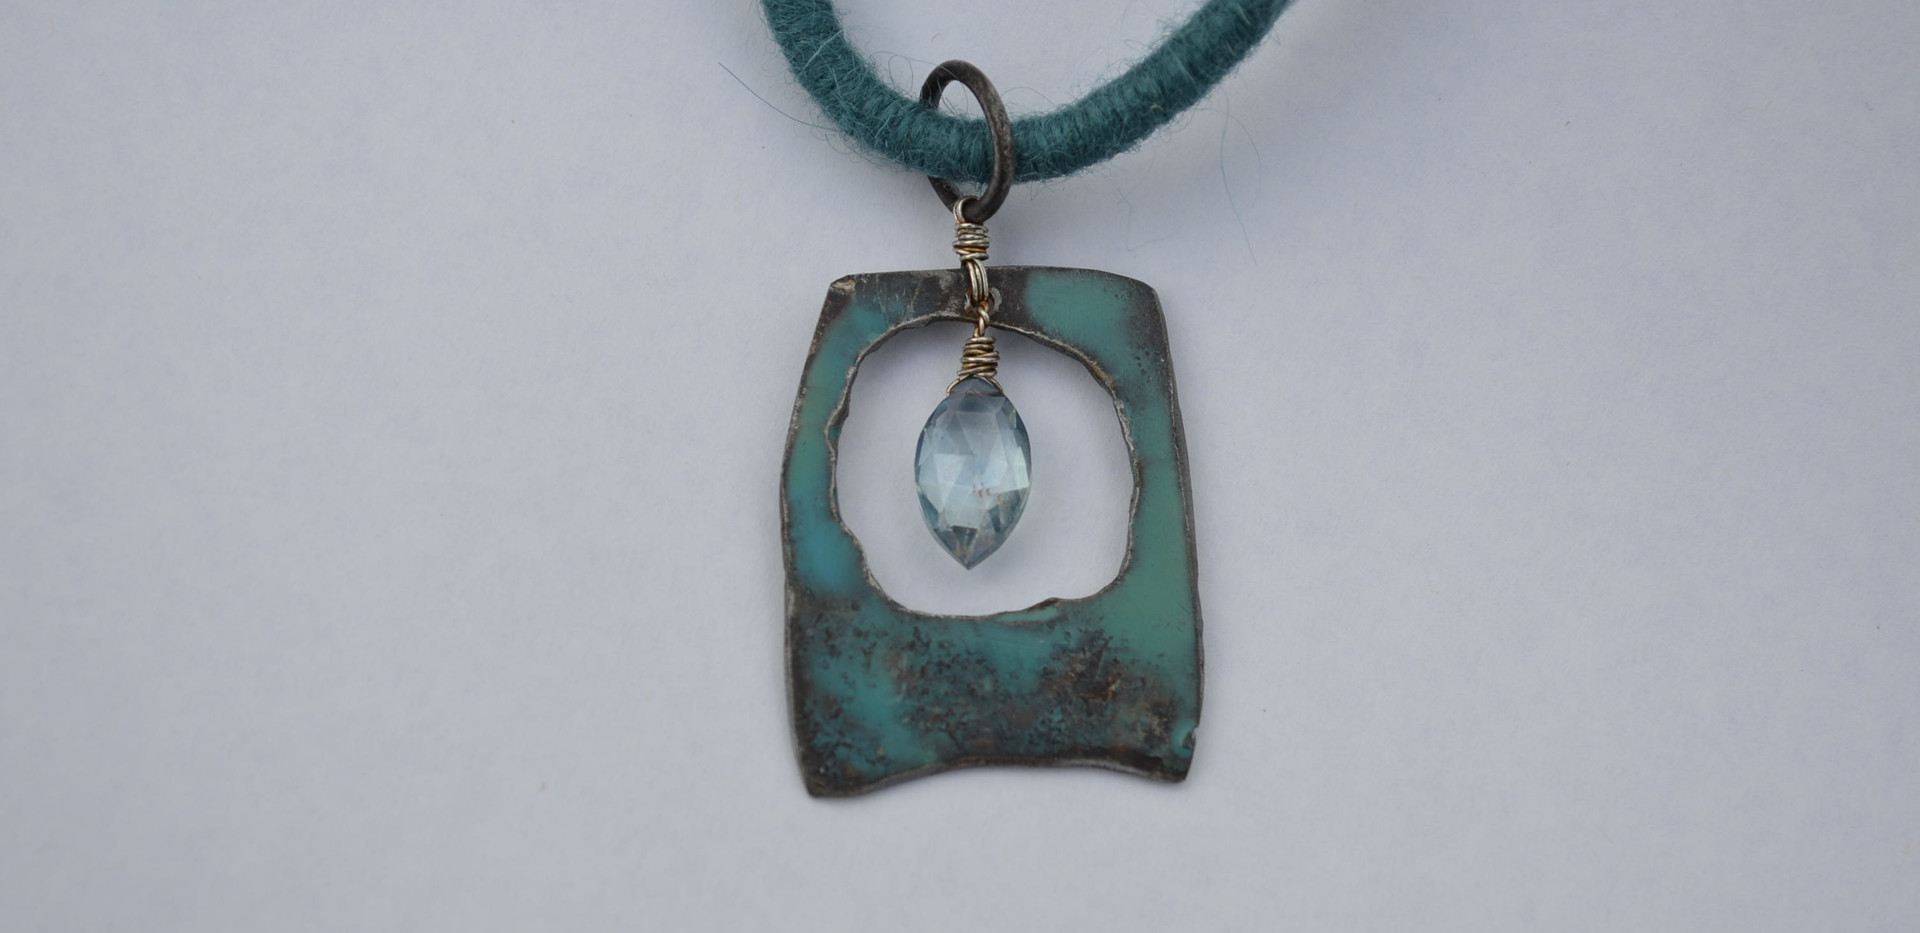 Encaustic on Steel & Aqua Marine on felted wool cord necklace